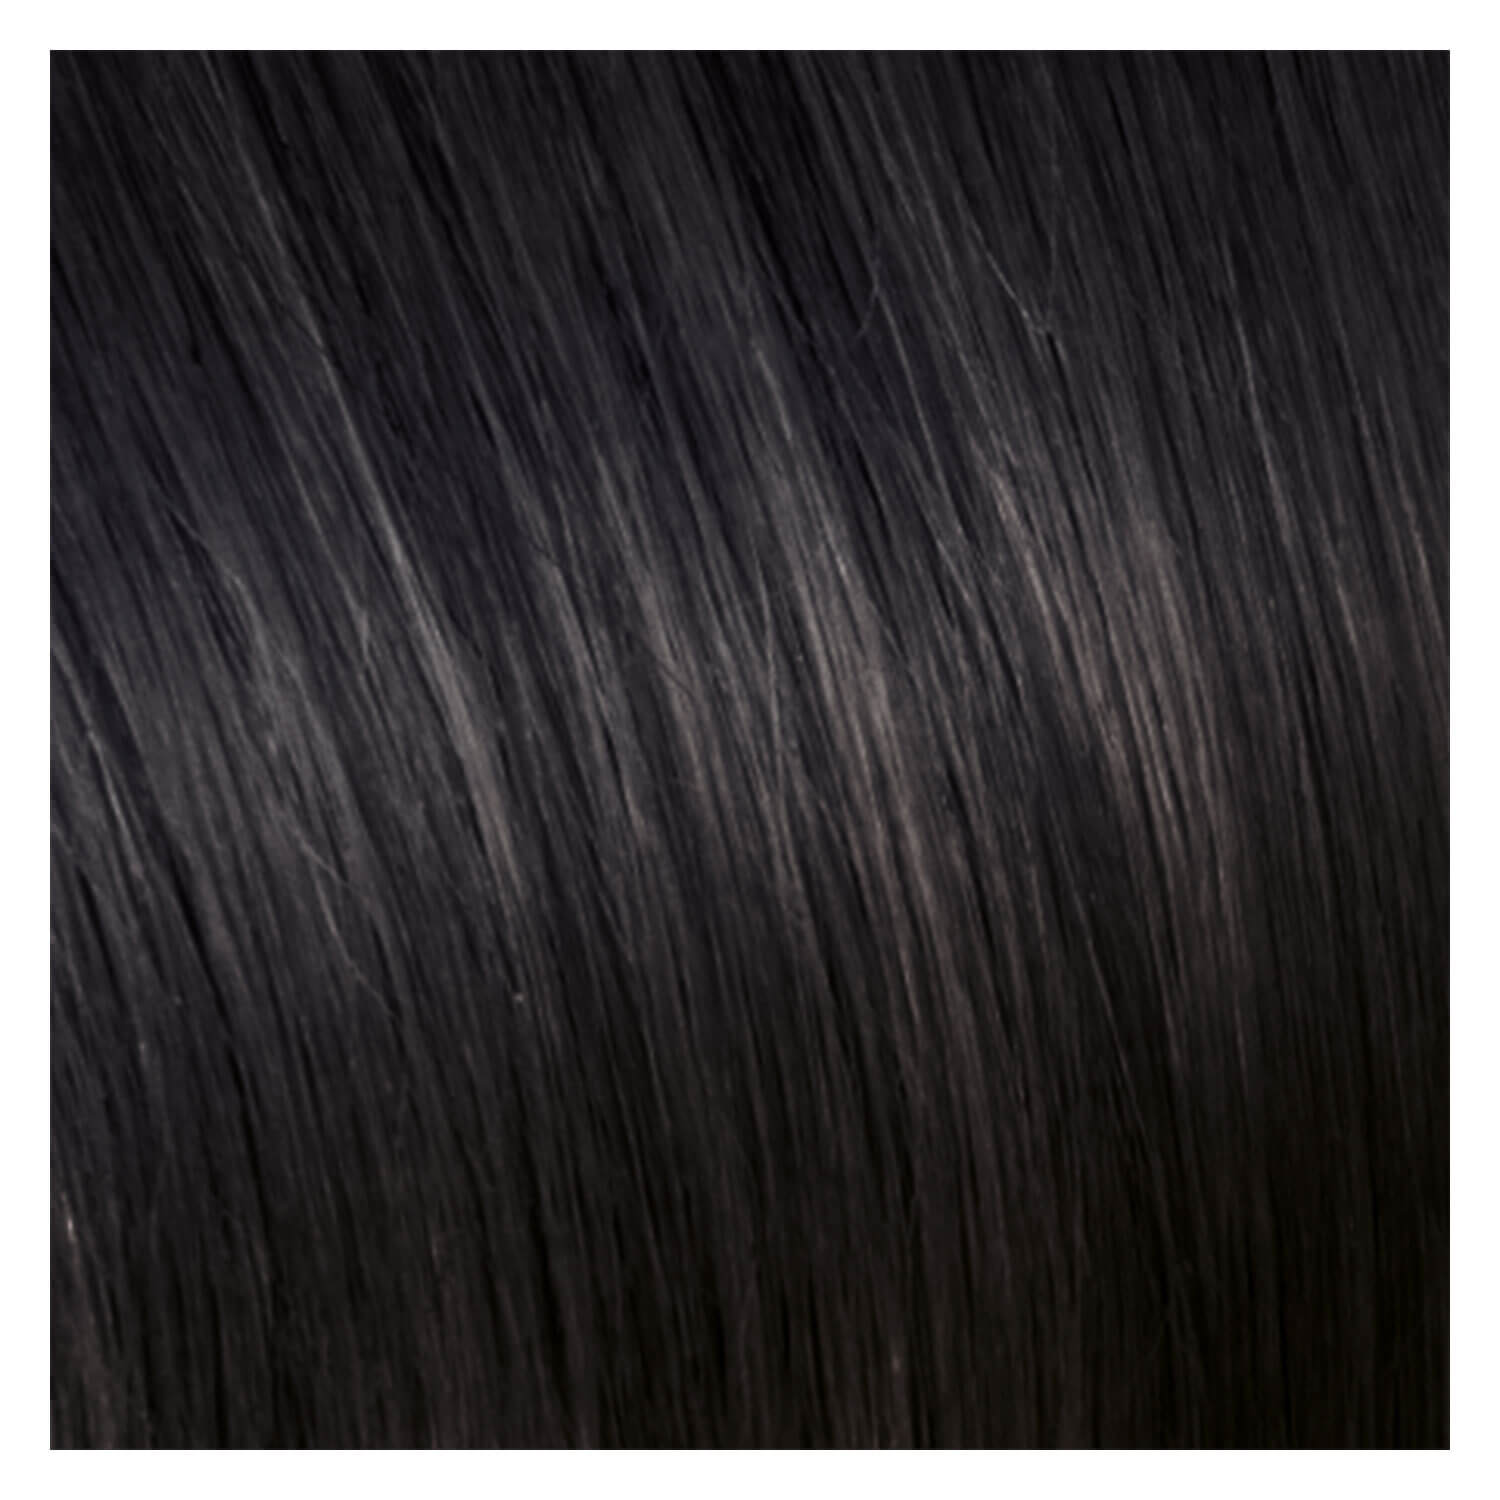 SHE Weft In-System Hair Extensions - 1B Schwarz 50/60cm